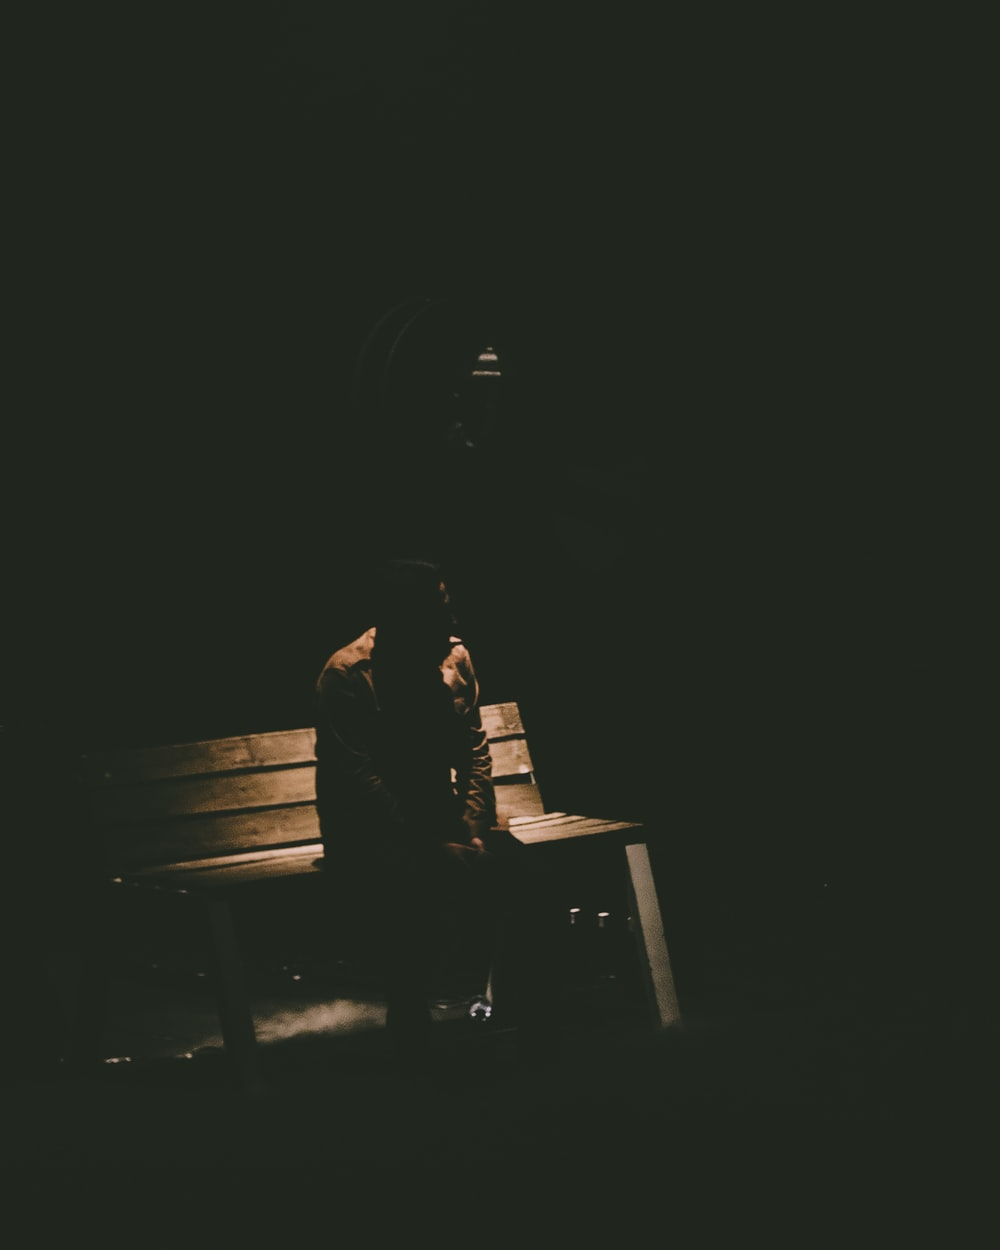 person sitting on bench in dark room